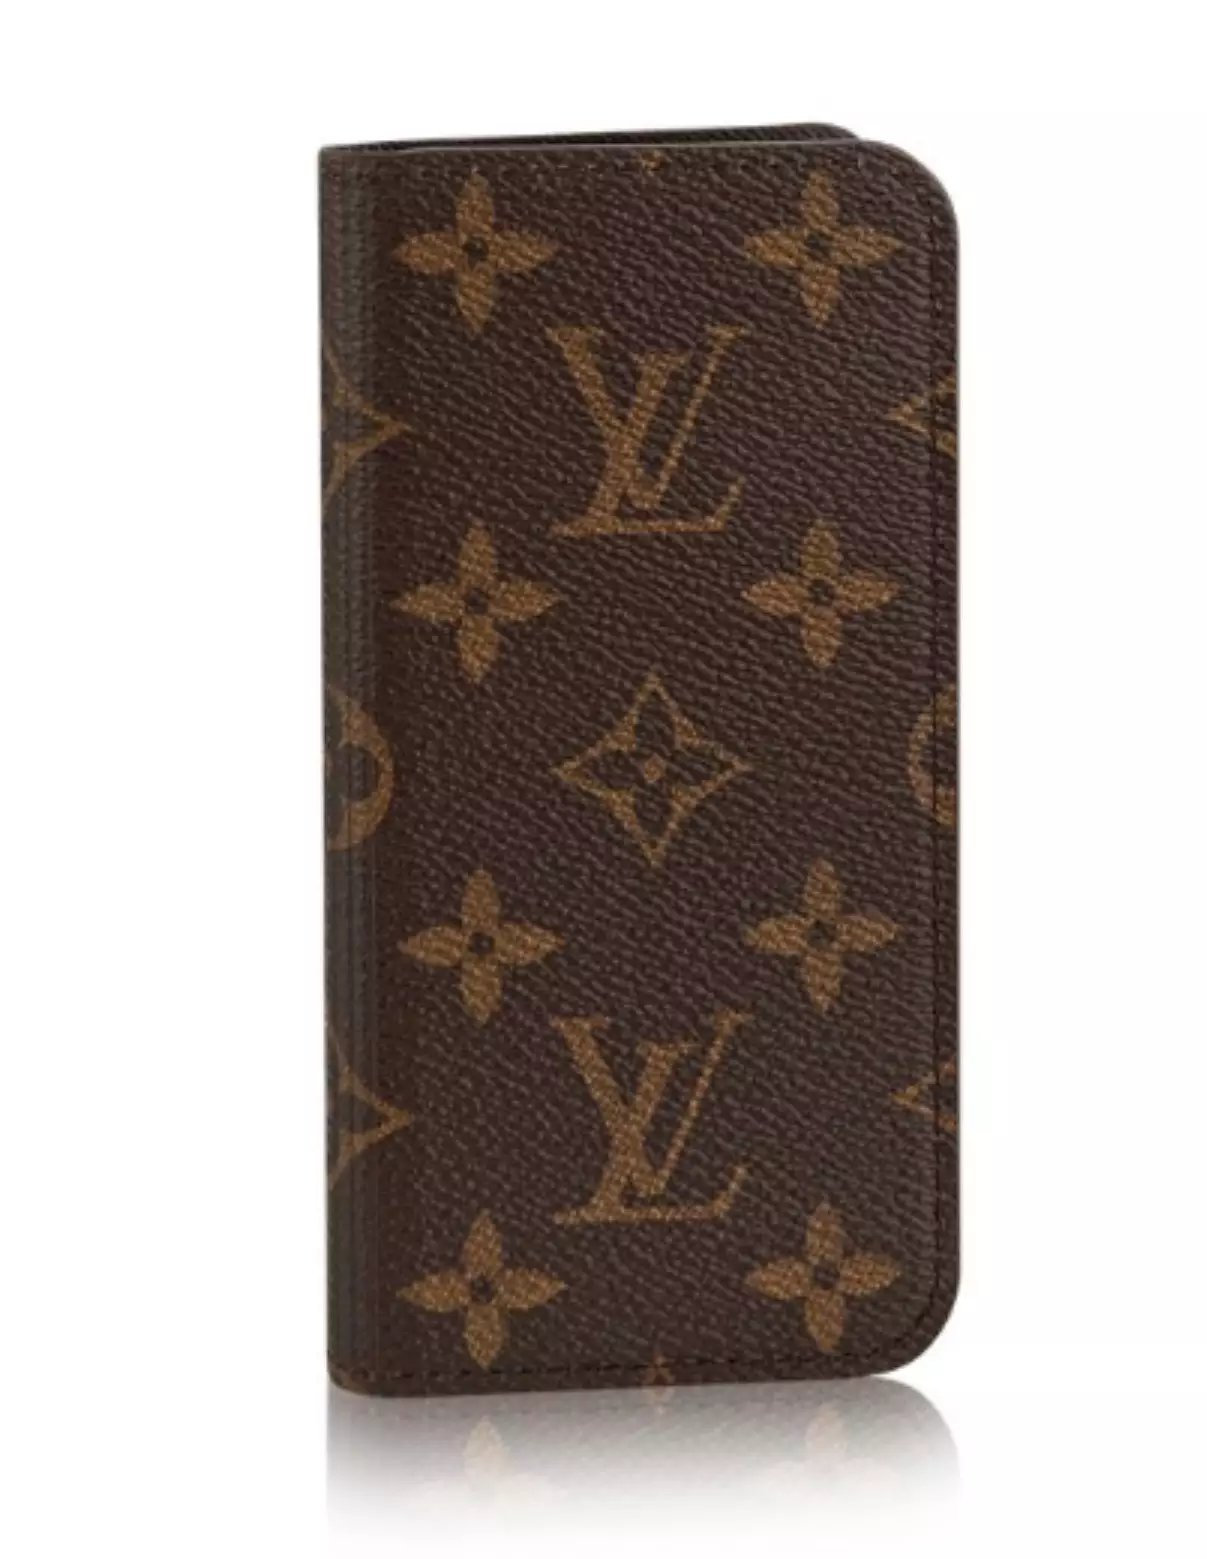 original iphone hülle eigene iphone hülle erstellen Louis Vuitton iphone 8 hüllen iphone 8 tasche filz iphone 8 flip tasche handyhüllen zum 8lber designen iphone 8 bilder iphone 8 hülle foto iphone 8 hülle silikon